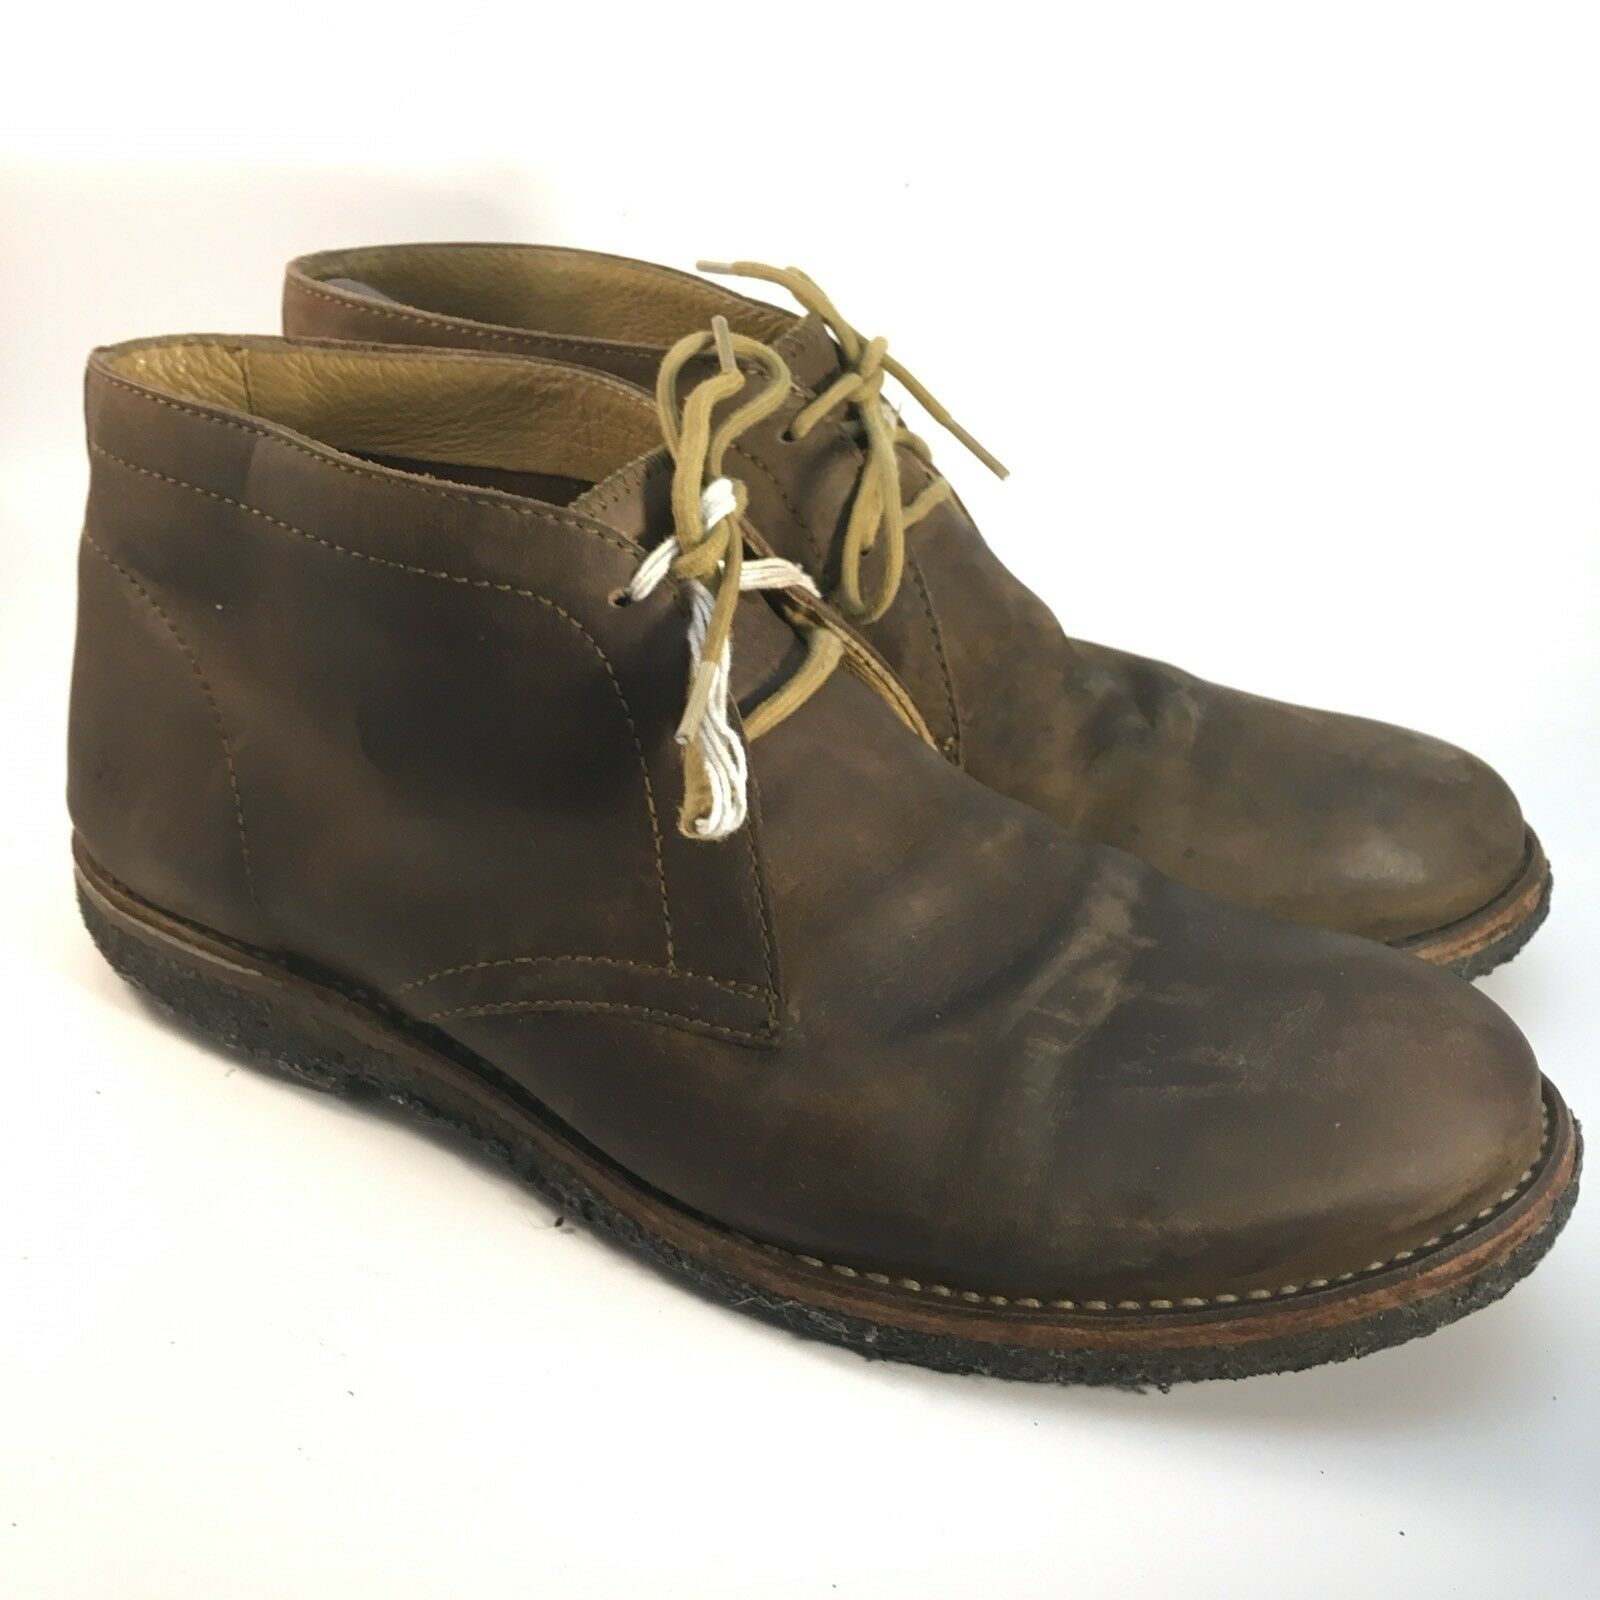 Mens FRYE 11.5 D Desert Boots Chukka Distressed Leather Brown Lace Up